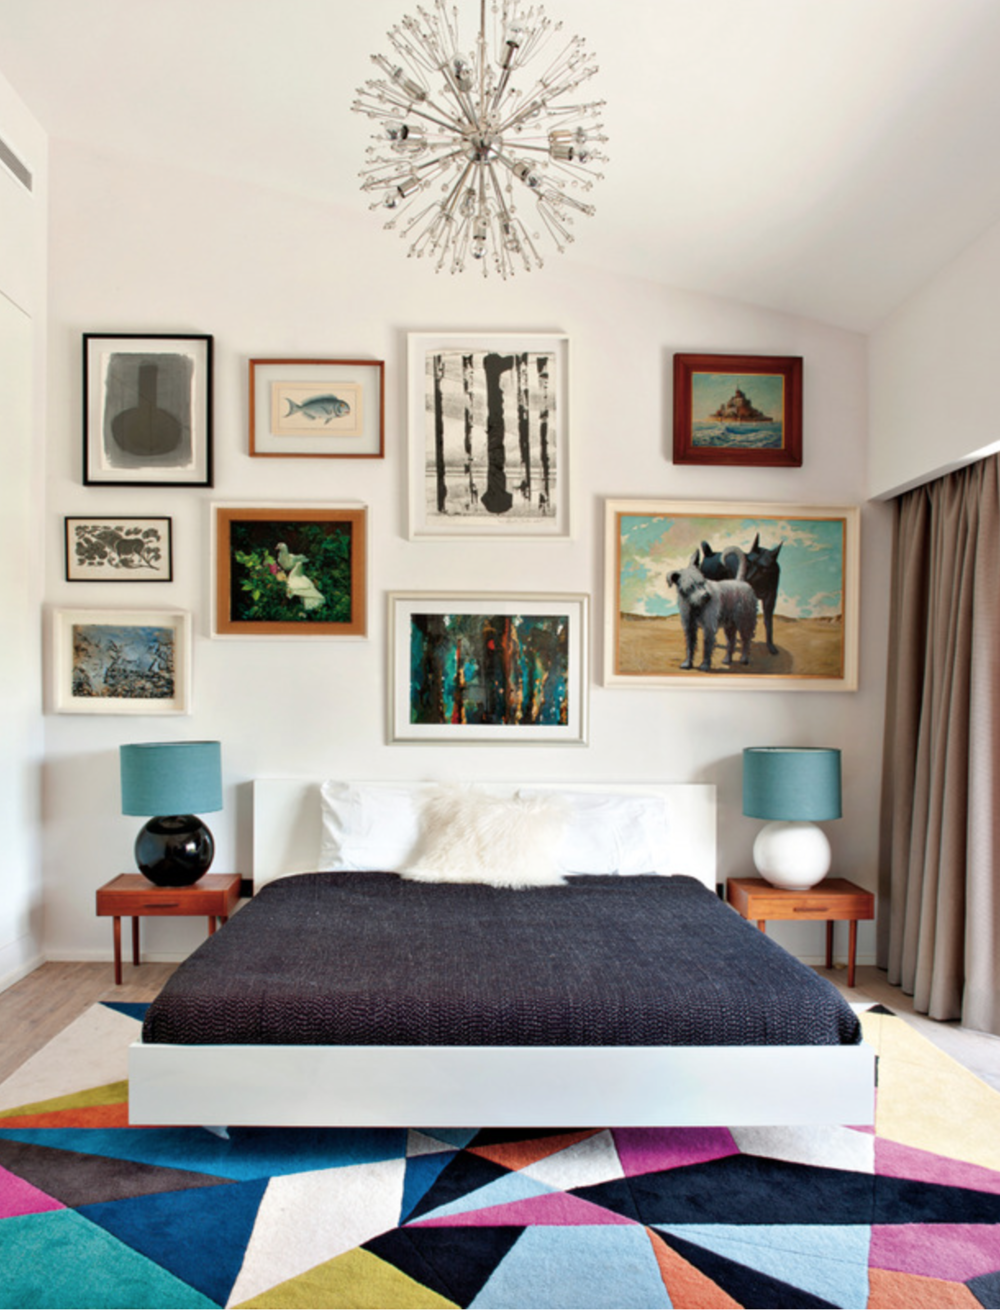 Photo courtesy of Elle Decor Espana